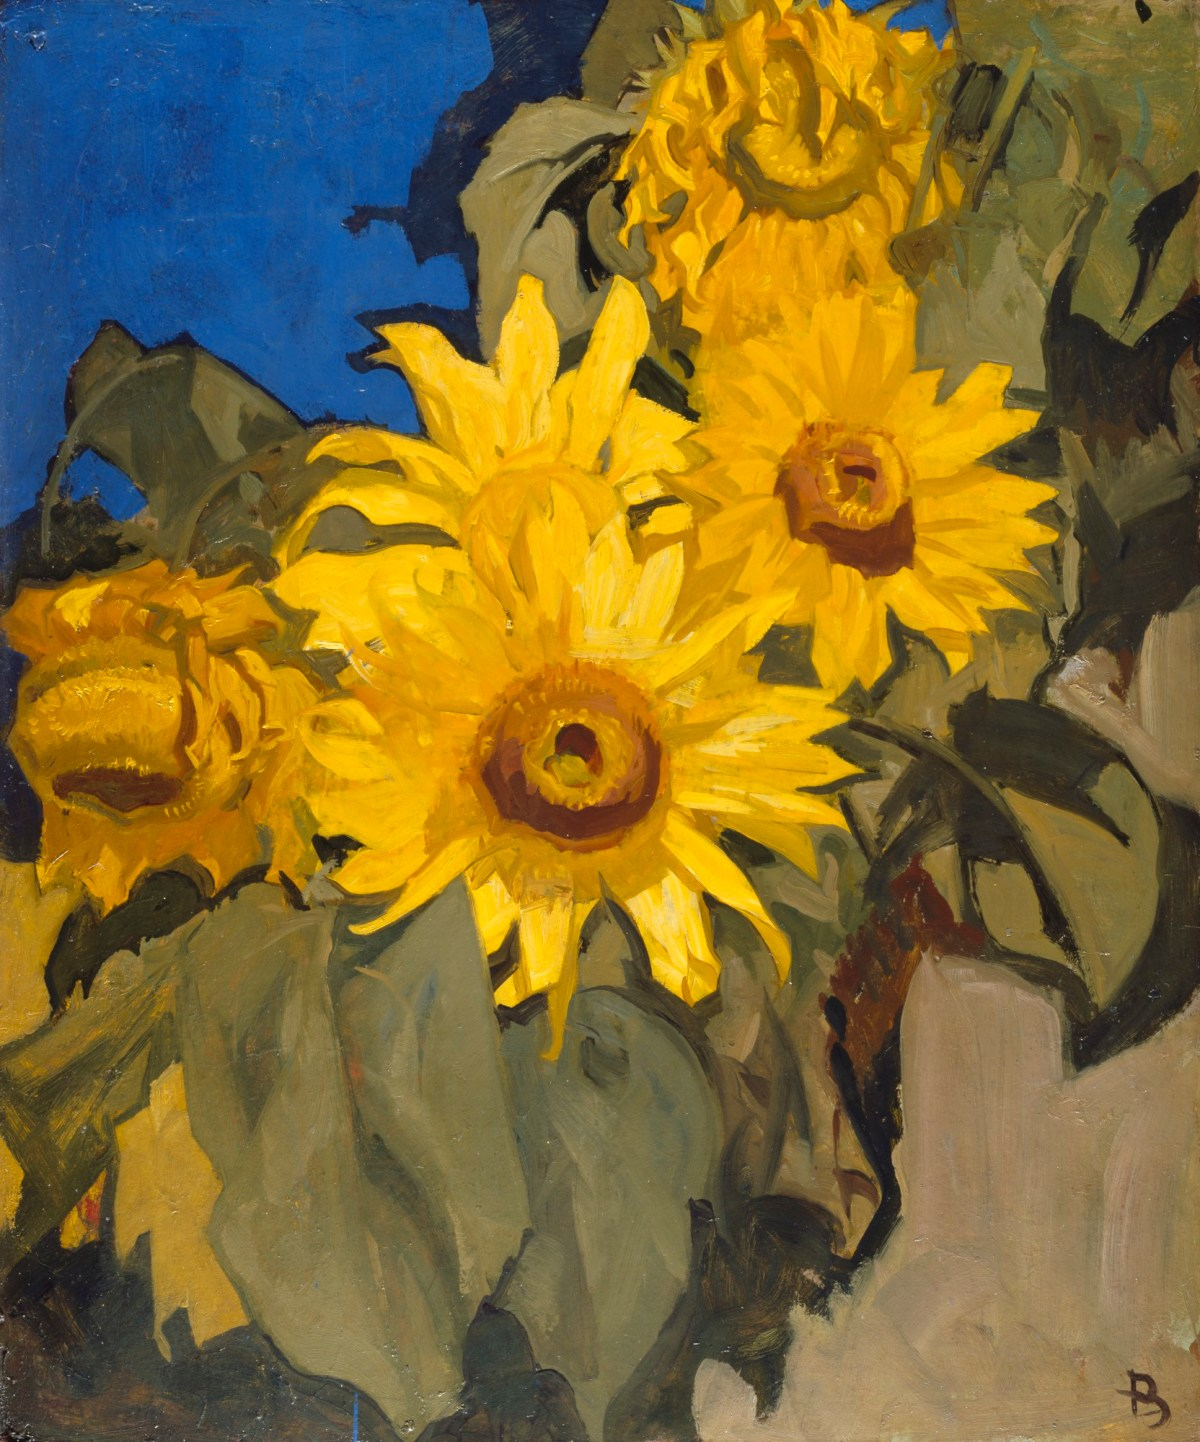 Sunflowers, Sir Frank Brangwyn RA - Early 20c